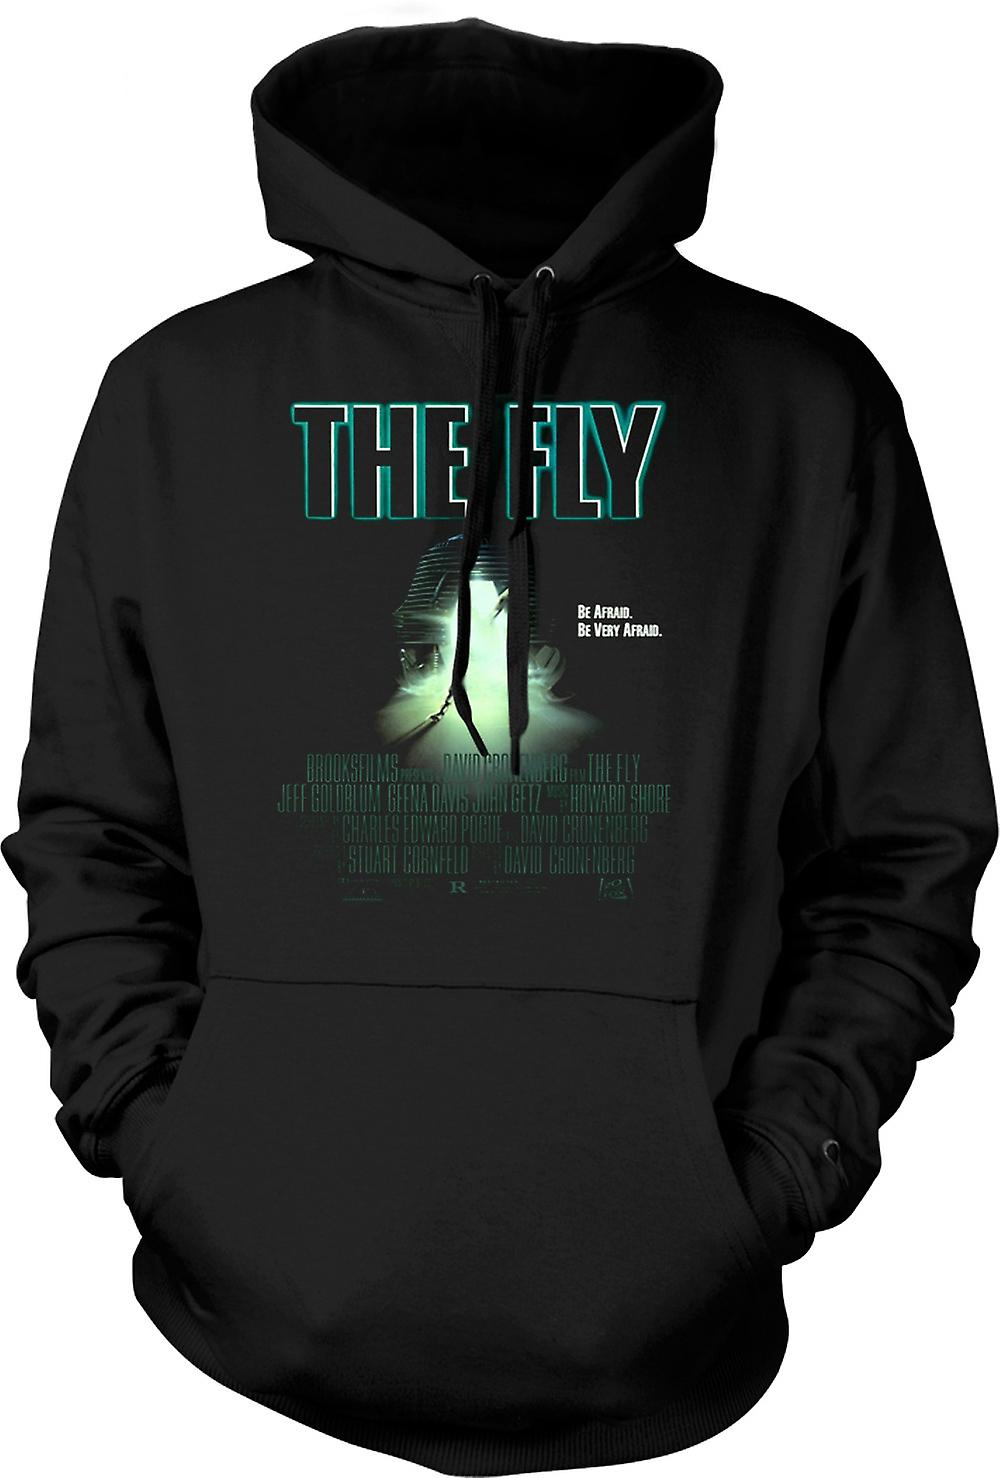 Mens Hoodie - The Fly - Horreur cool Film